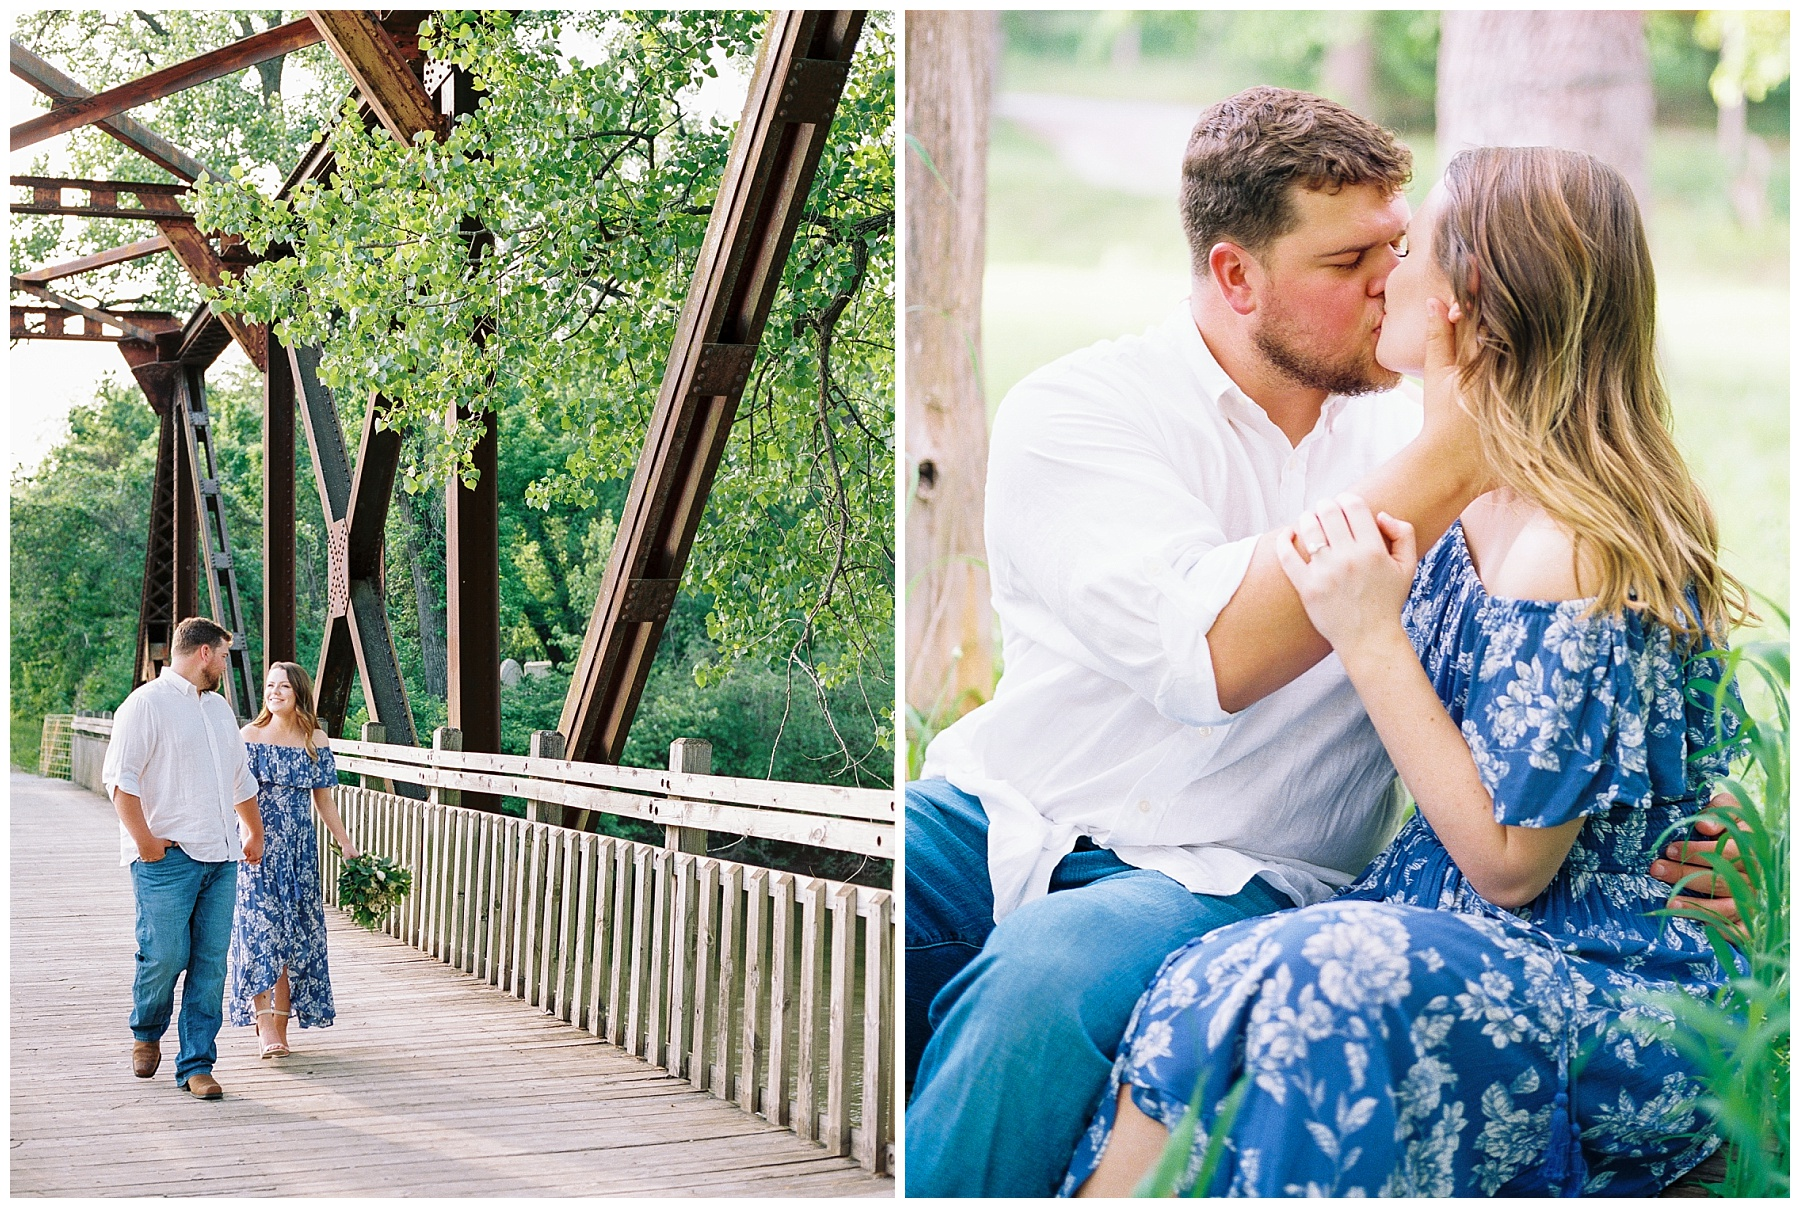 Flirty Spring Engagement Session with Floral Bouquet at Cooper's Landing by Kelsi Kliethermes Photography Best Missouri and Maui Wedding Photographer_0010.jpg